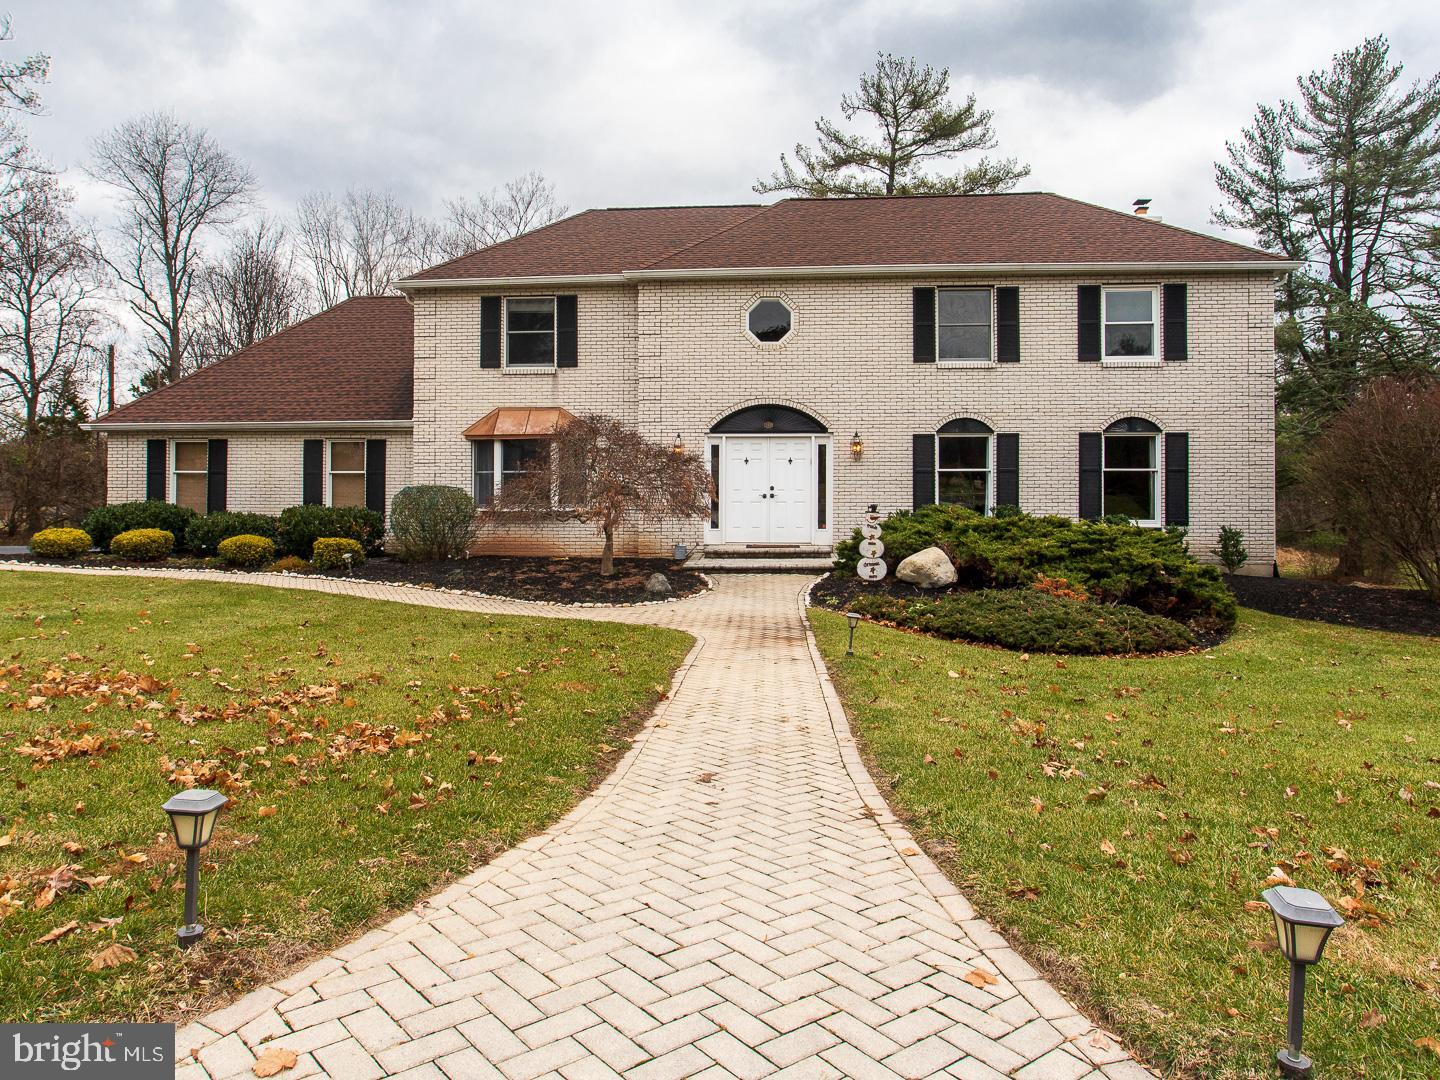 505 ANTHONY DRIVE, PLYMOUTH MEETING, PA 19462